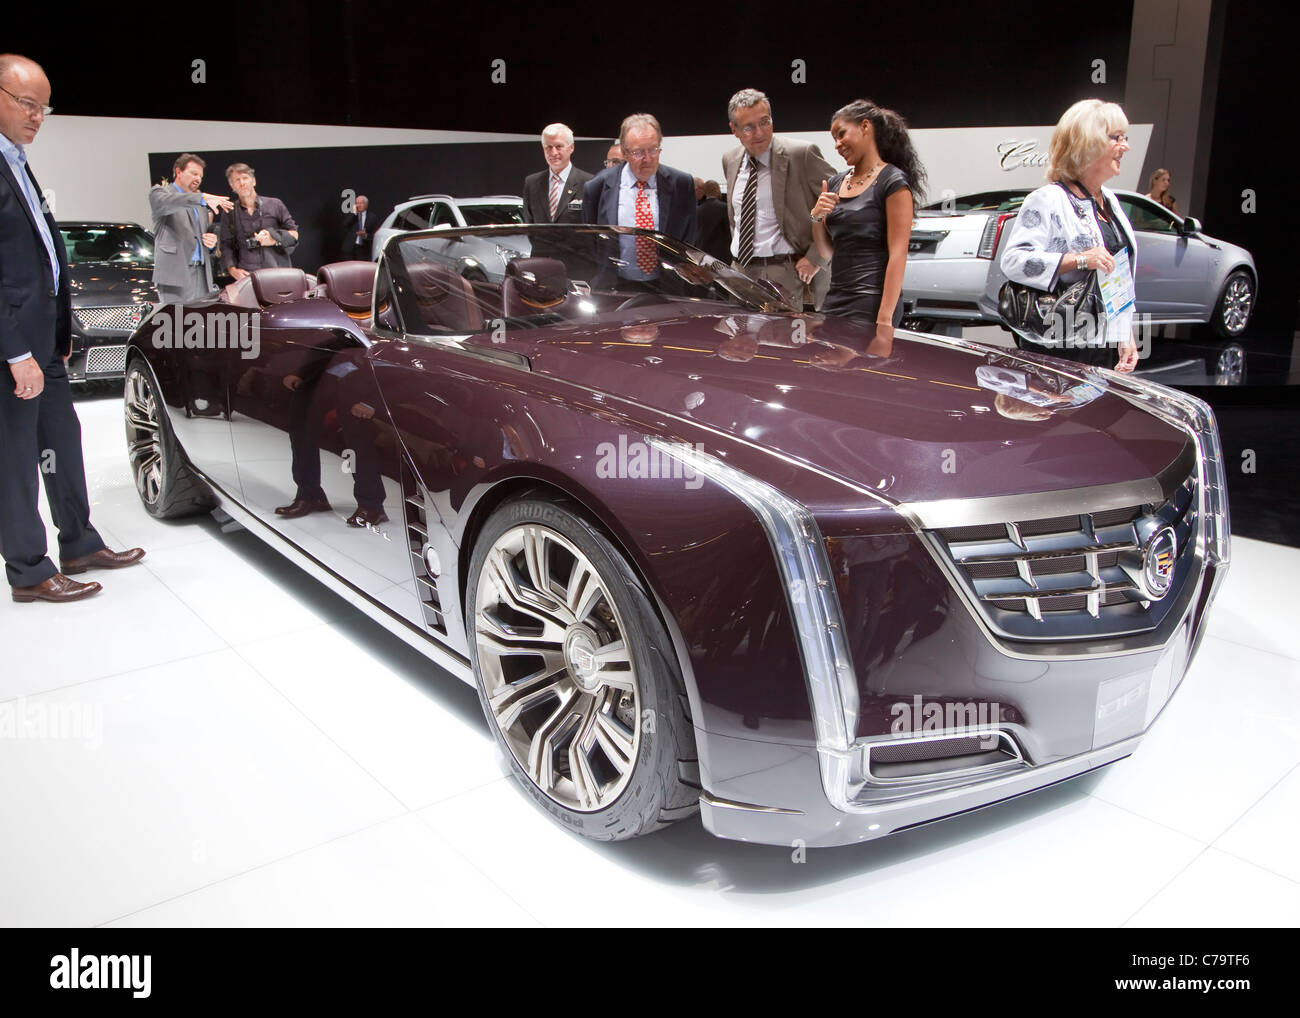 Nouvelle Cadillac Ciel Concept Car sur l'IAA 2011 International Motor Show de Francfort am Main, Allemagne Photo Stock